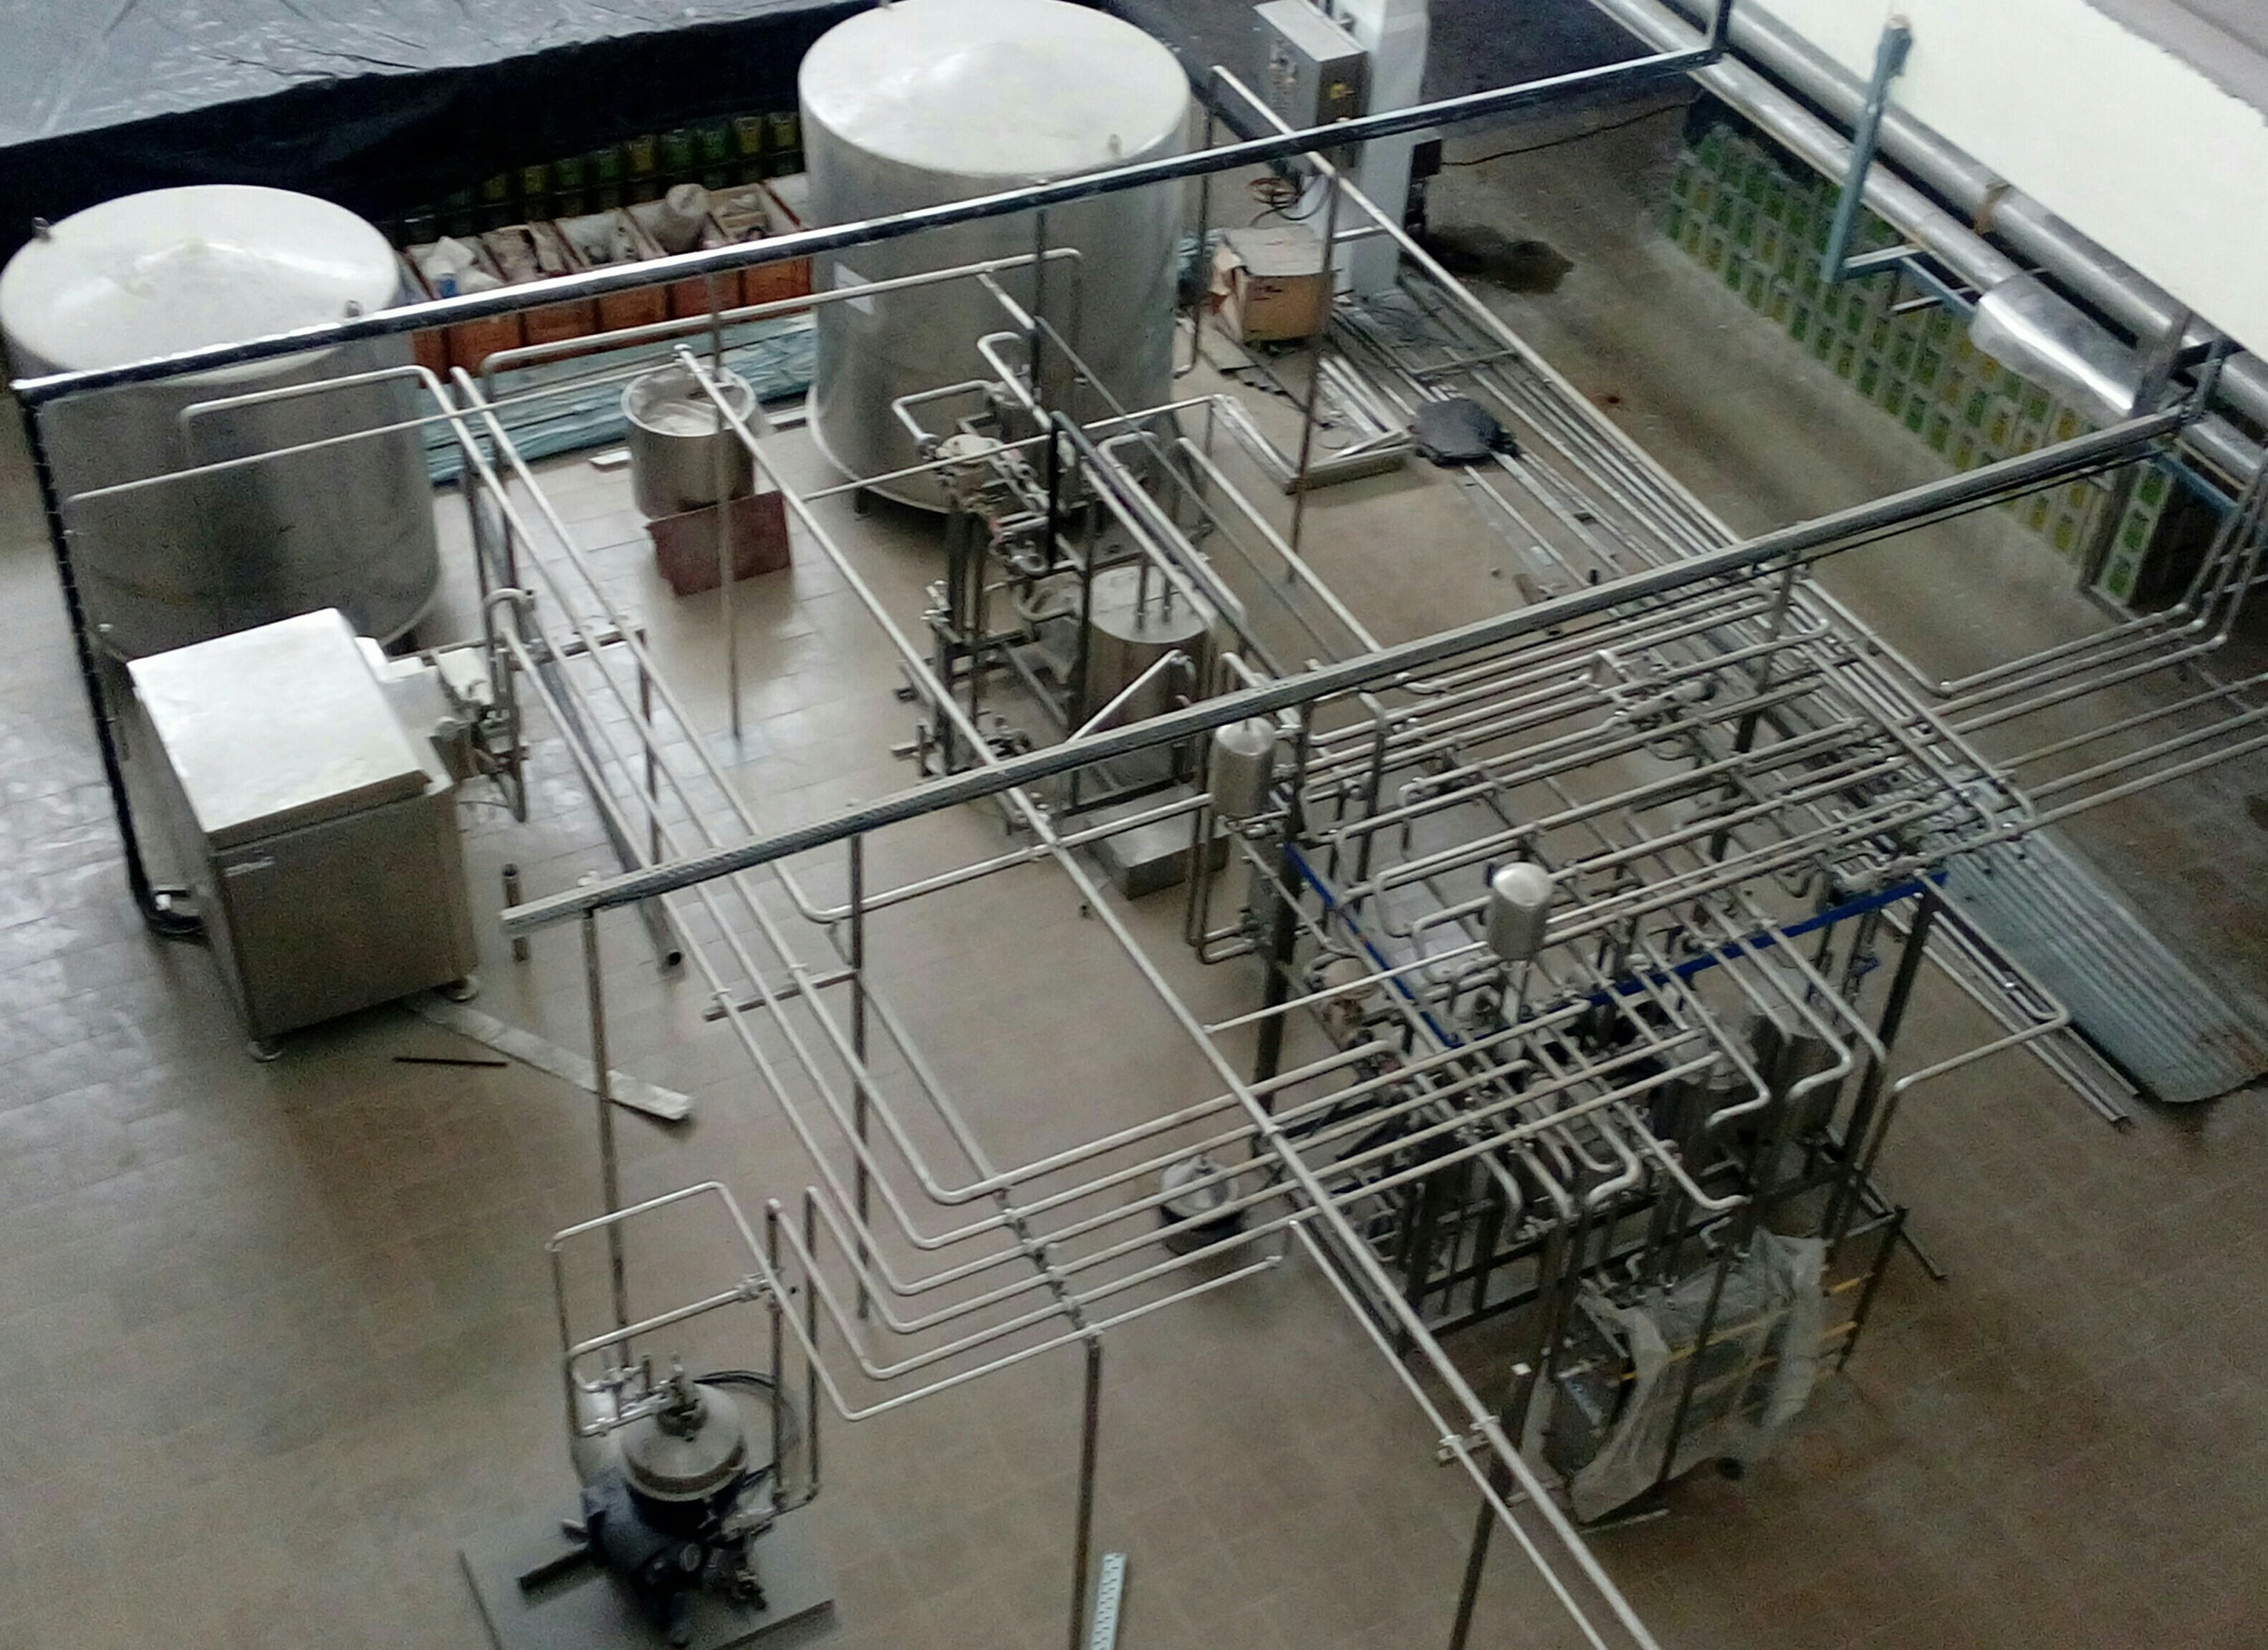 SKID MOUNTED PASTEURIZATION UNIT